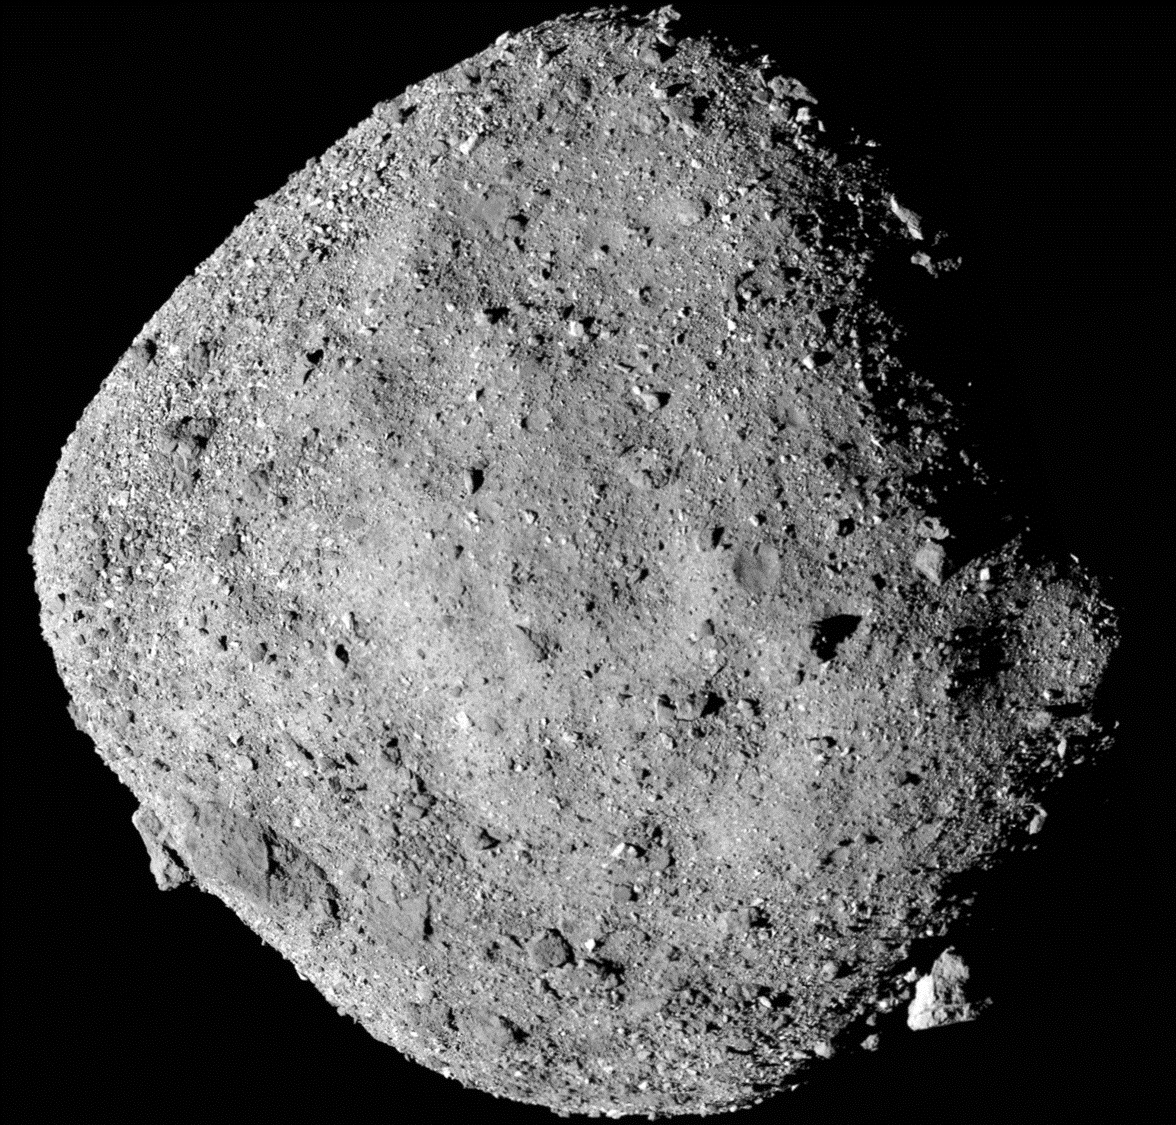 A mosaic image of asteroid Bennu, composed of 12 PolyCam images collected on December 2, 2018 by the OSIRIS-REx spacecraft from a range of 15 miles (24 km).  NASA/Goddard/University of Arizona/Handout via REUTERS